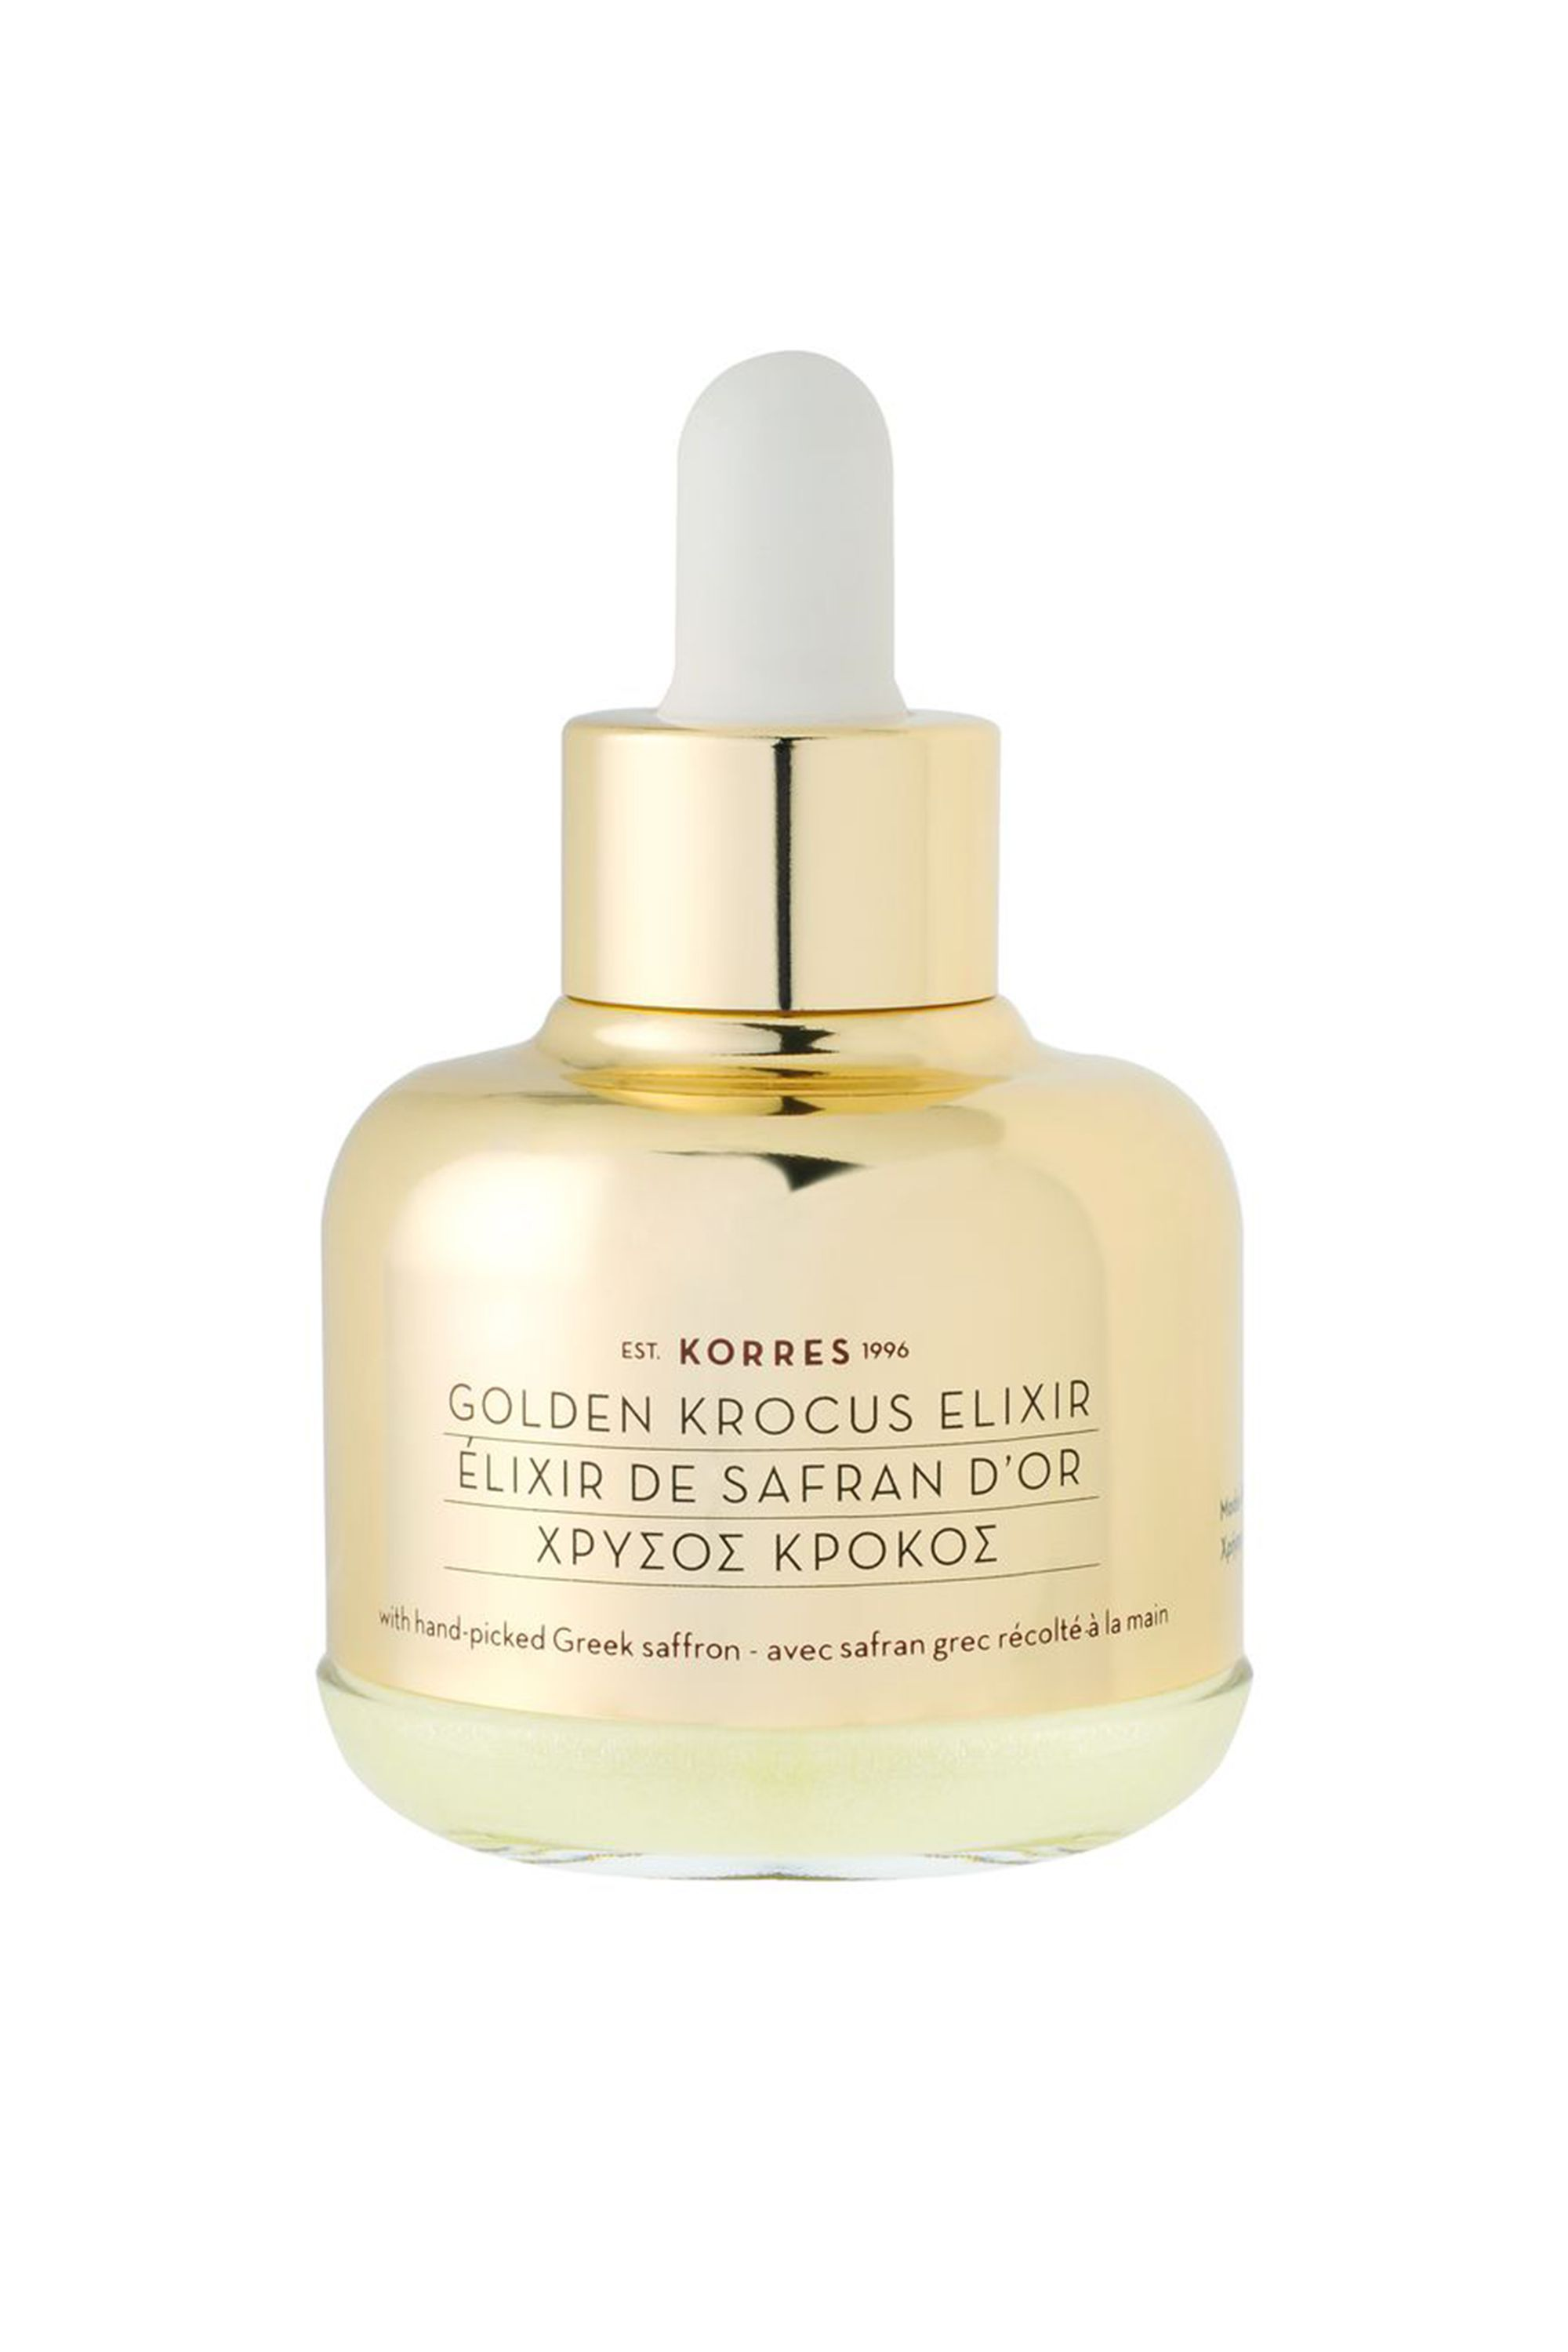 The Gold Standard Golden Krocus Ageless Saffron Elixir Serum Korres sephora.com $98.00 SHOP NOW A field of crocus is bright as the sun and the saffron extract derived from those handpicked blossoms will make your skin look (almost) as radiant. That's why Korres put them in this skin-smoothing serum.